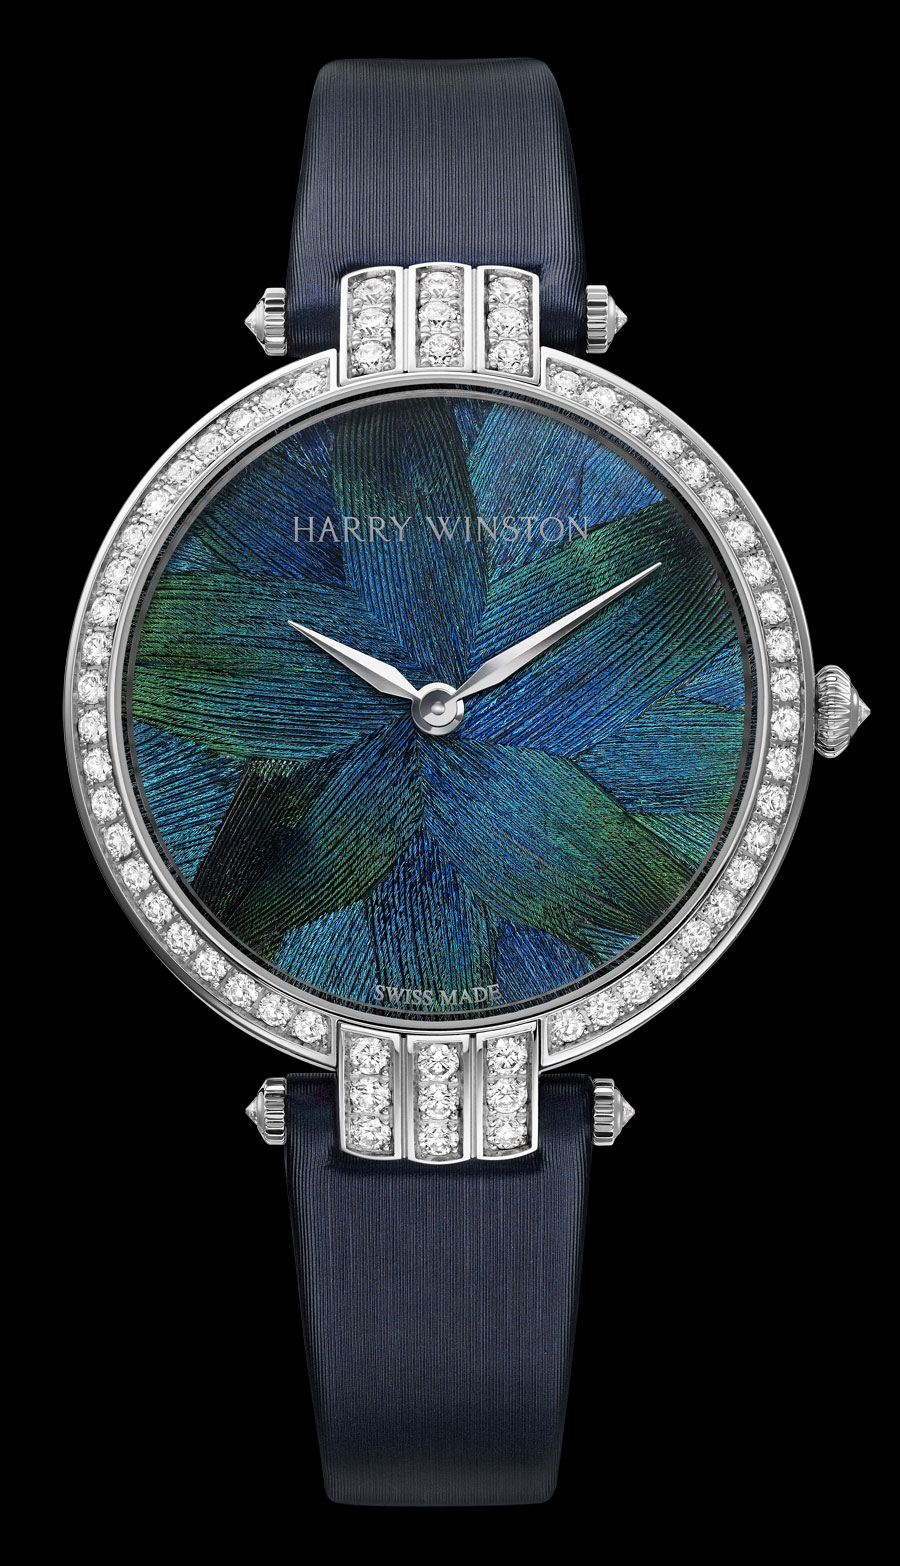 Harry Winston Premier Feathers watches